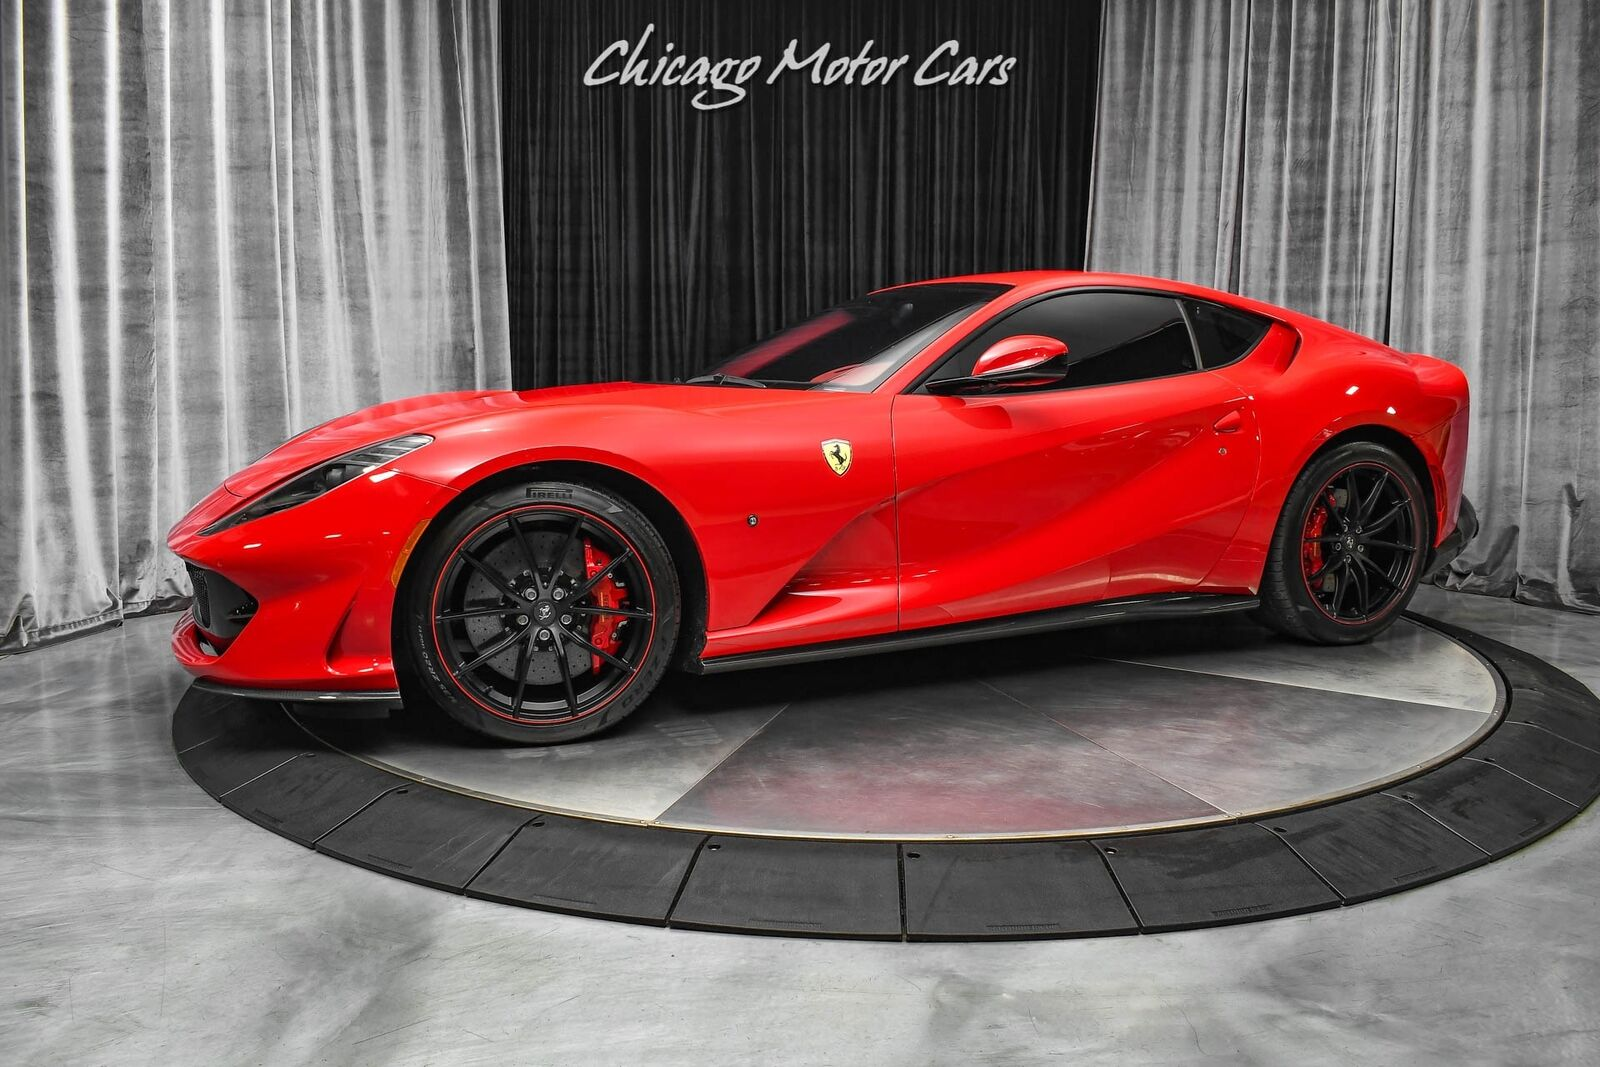 2018 Ferrari 812 Superfast Coupe Carbon Fiber Everything! Special Order Taylo